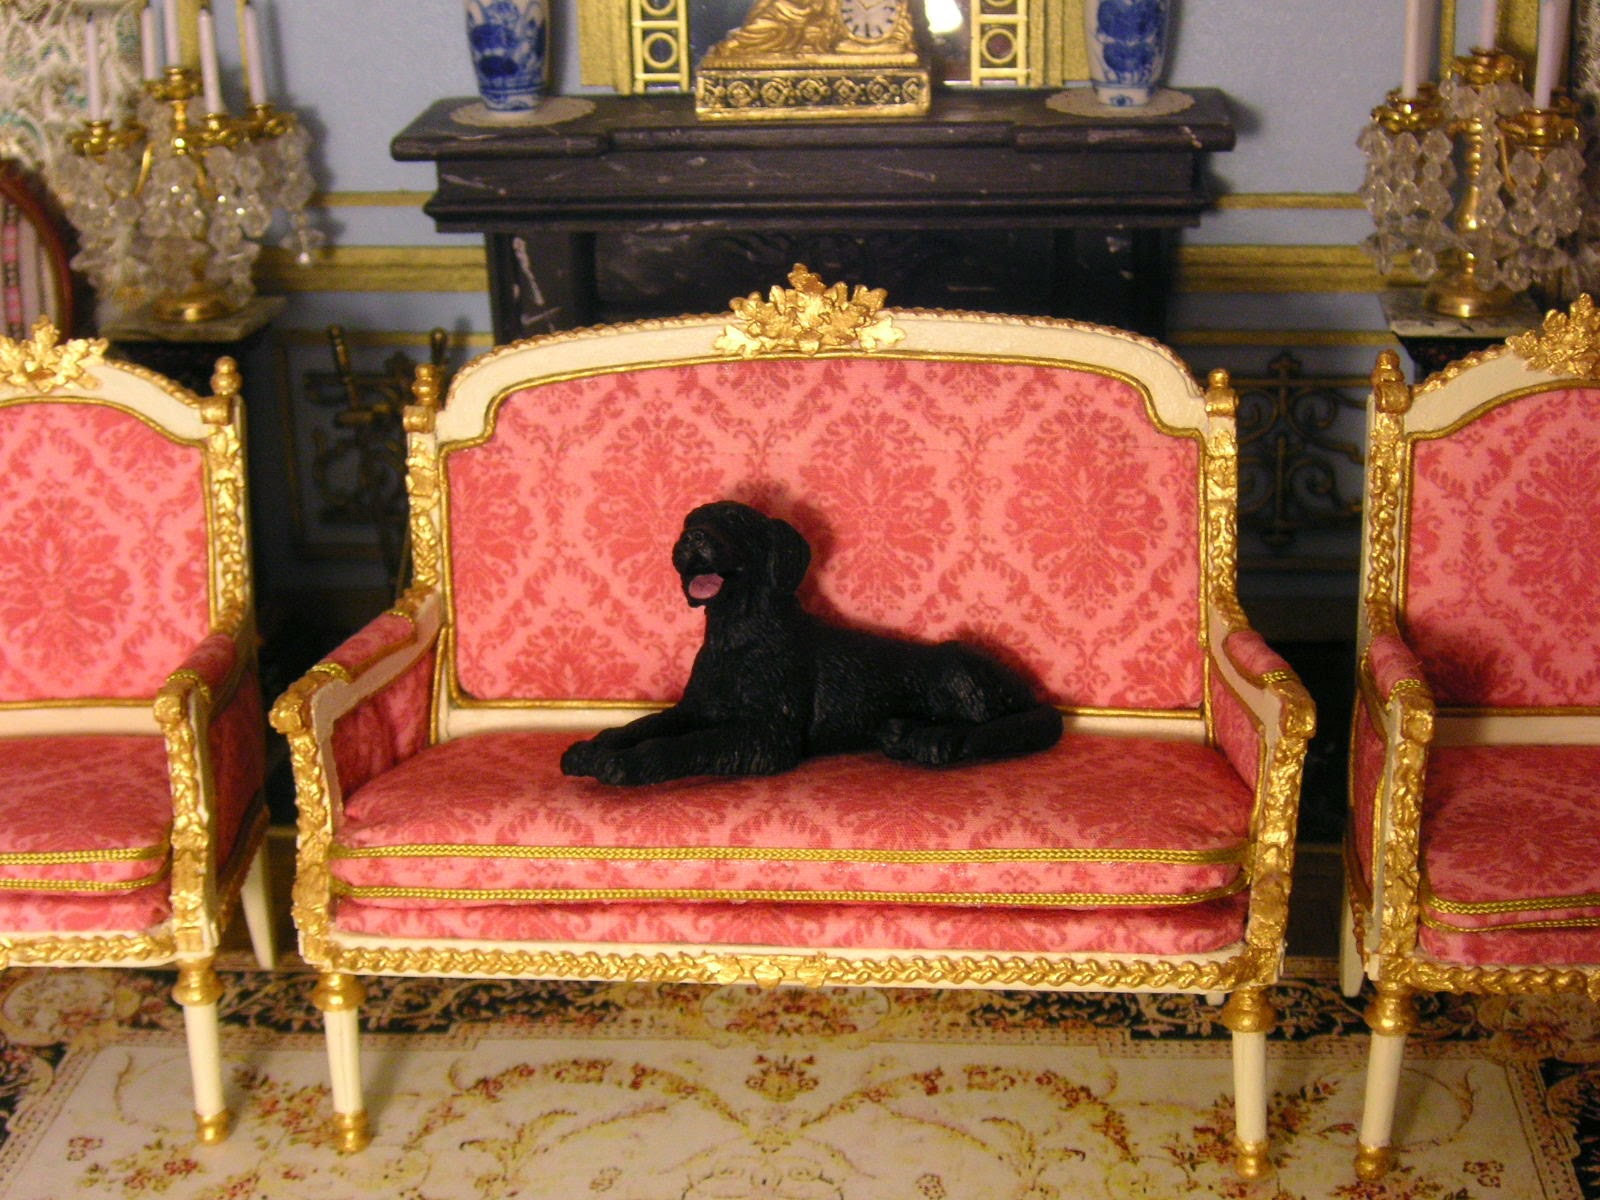 Ensemble Salon Complet Ensemble De Salon Complet Inspiration Louisxvi